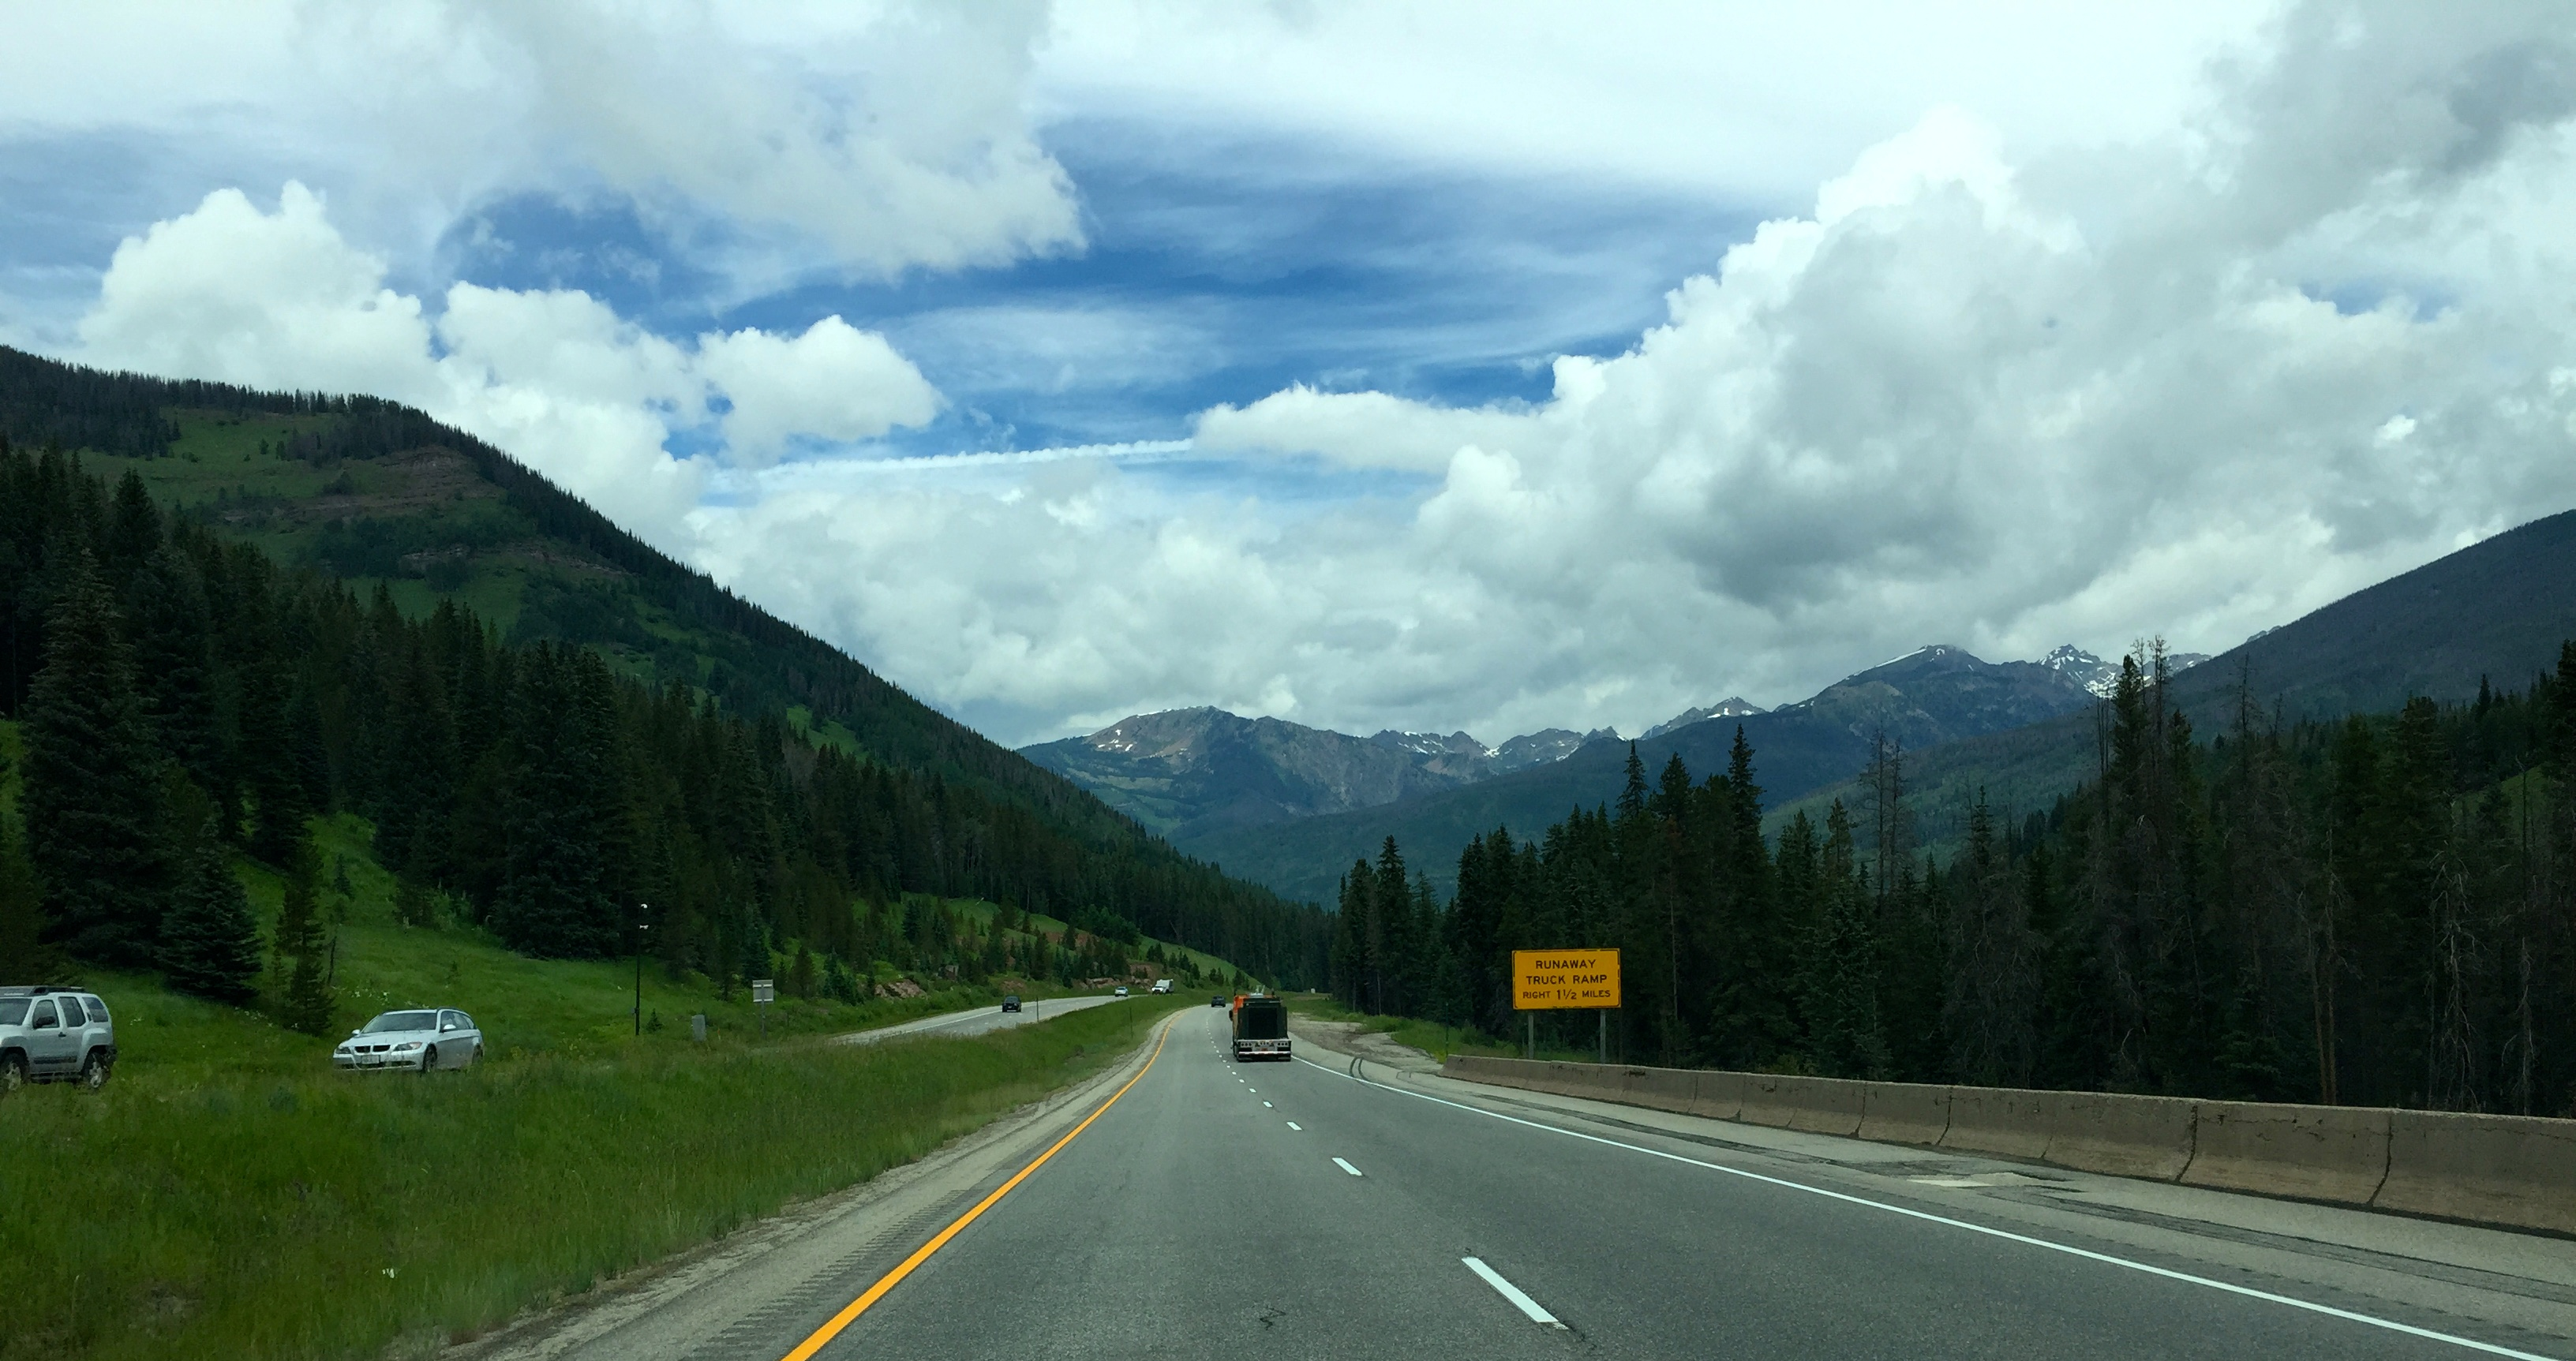 Our Driving Trip Out West: Carved Rocks, Gem-filled Rocks, and The Rockies